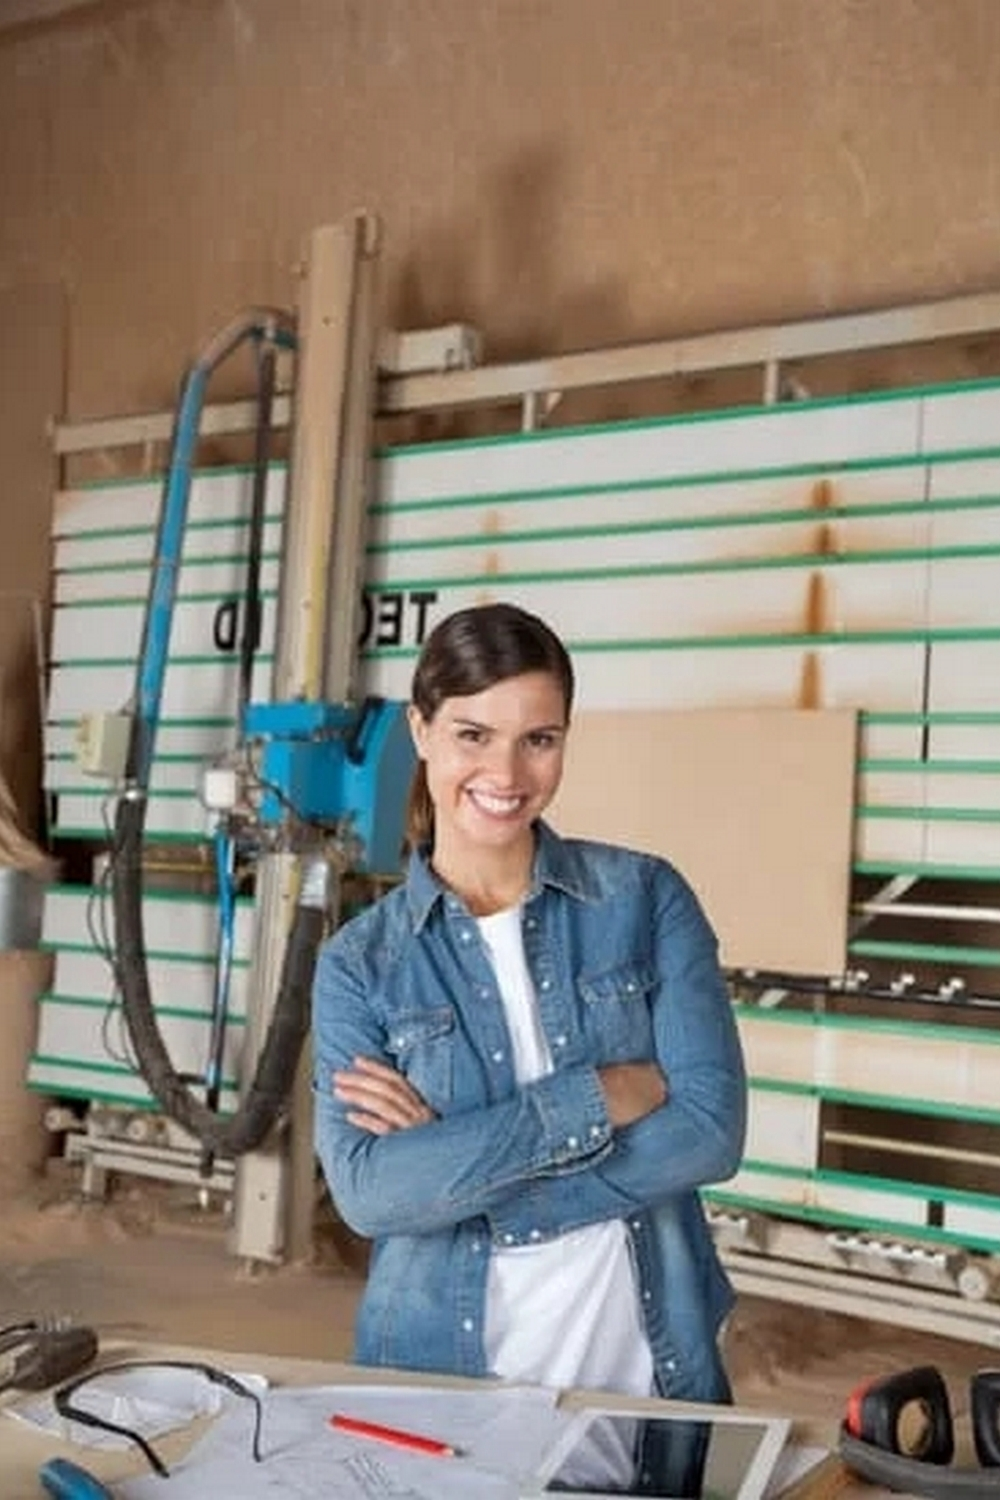 woodworking ideas diy your way